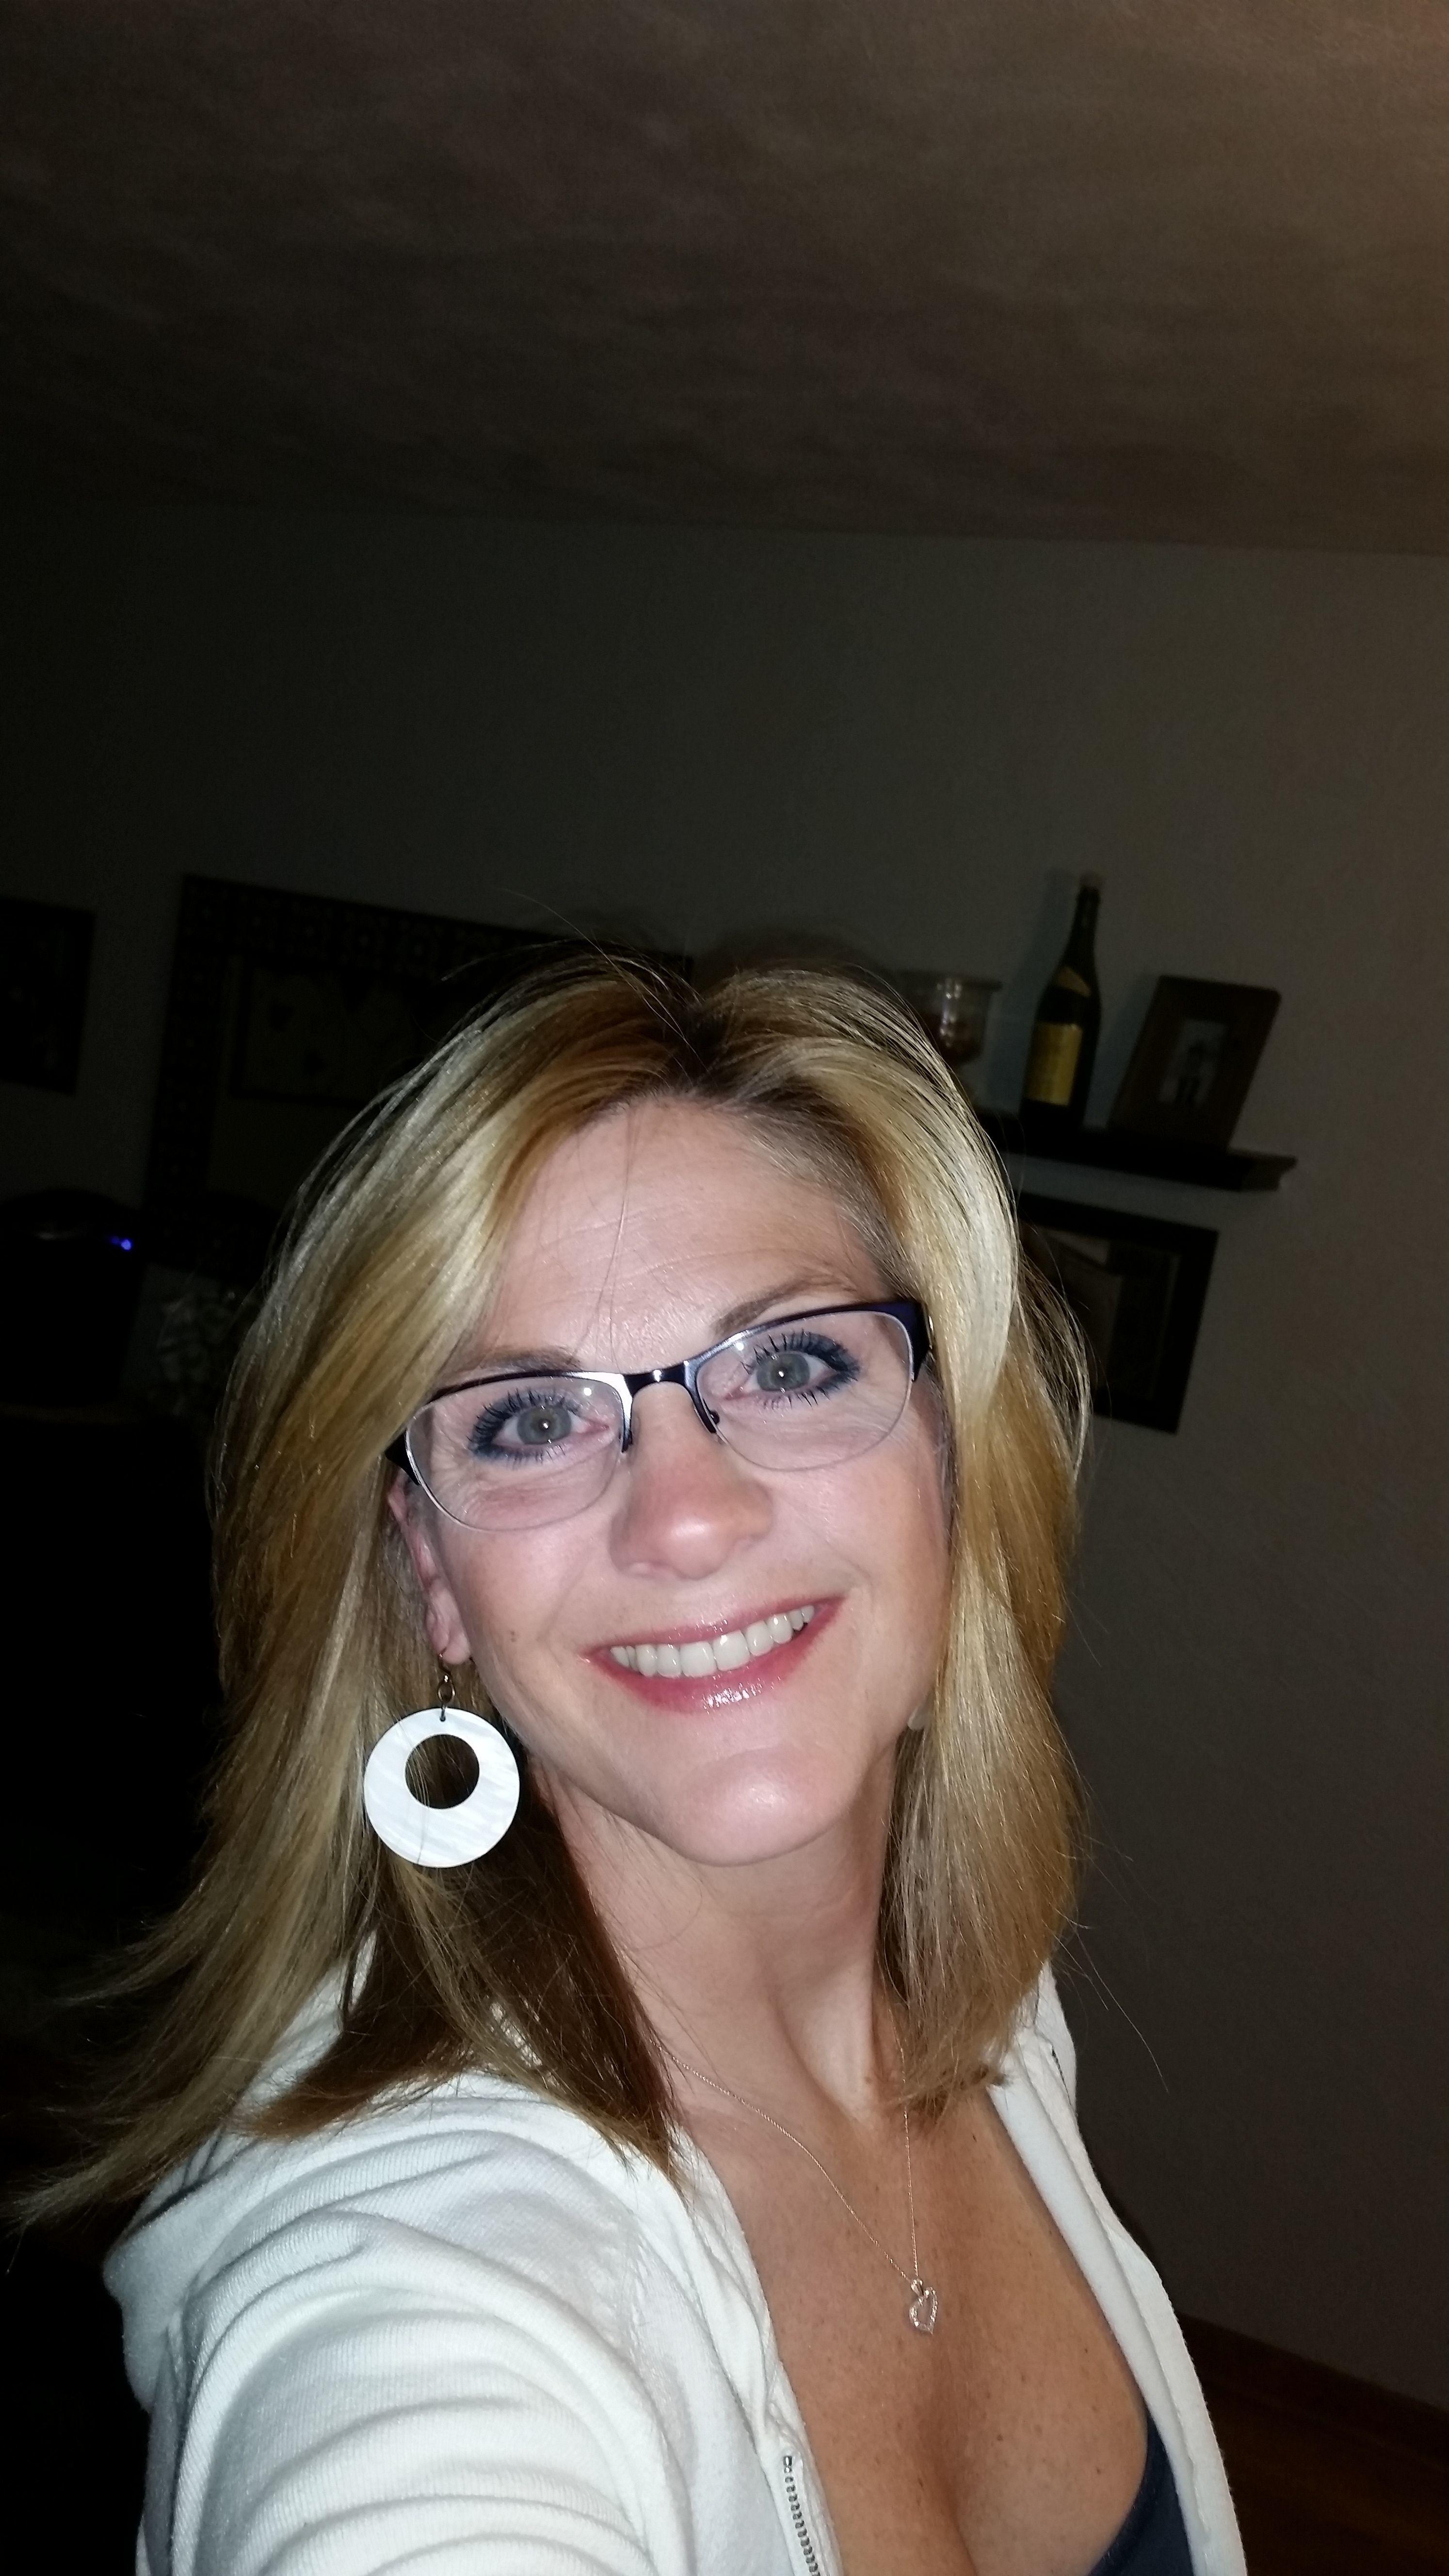 50 plus dating in peoria il